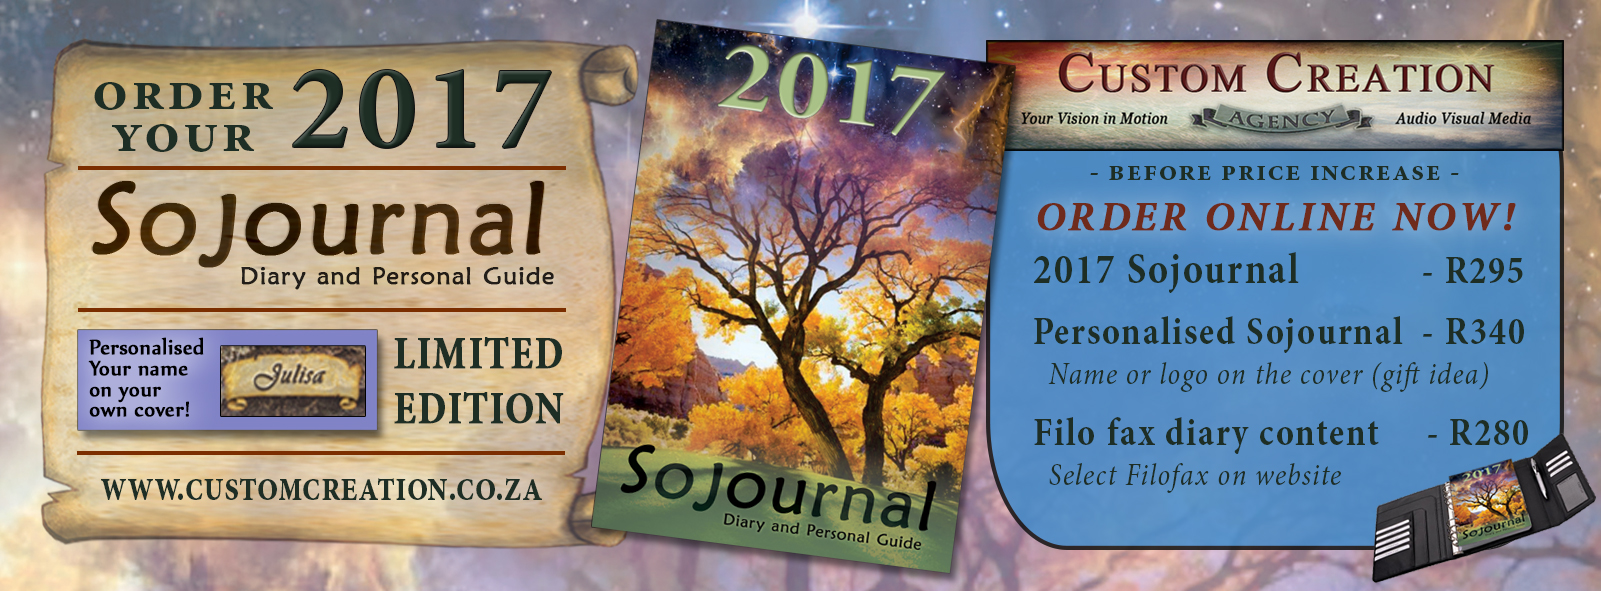 2017-sojournal-fb-banner-november-2016-2